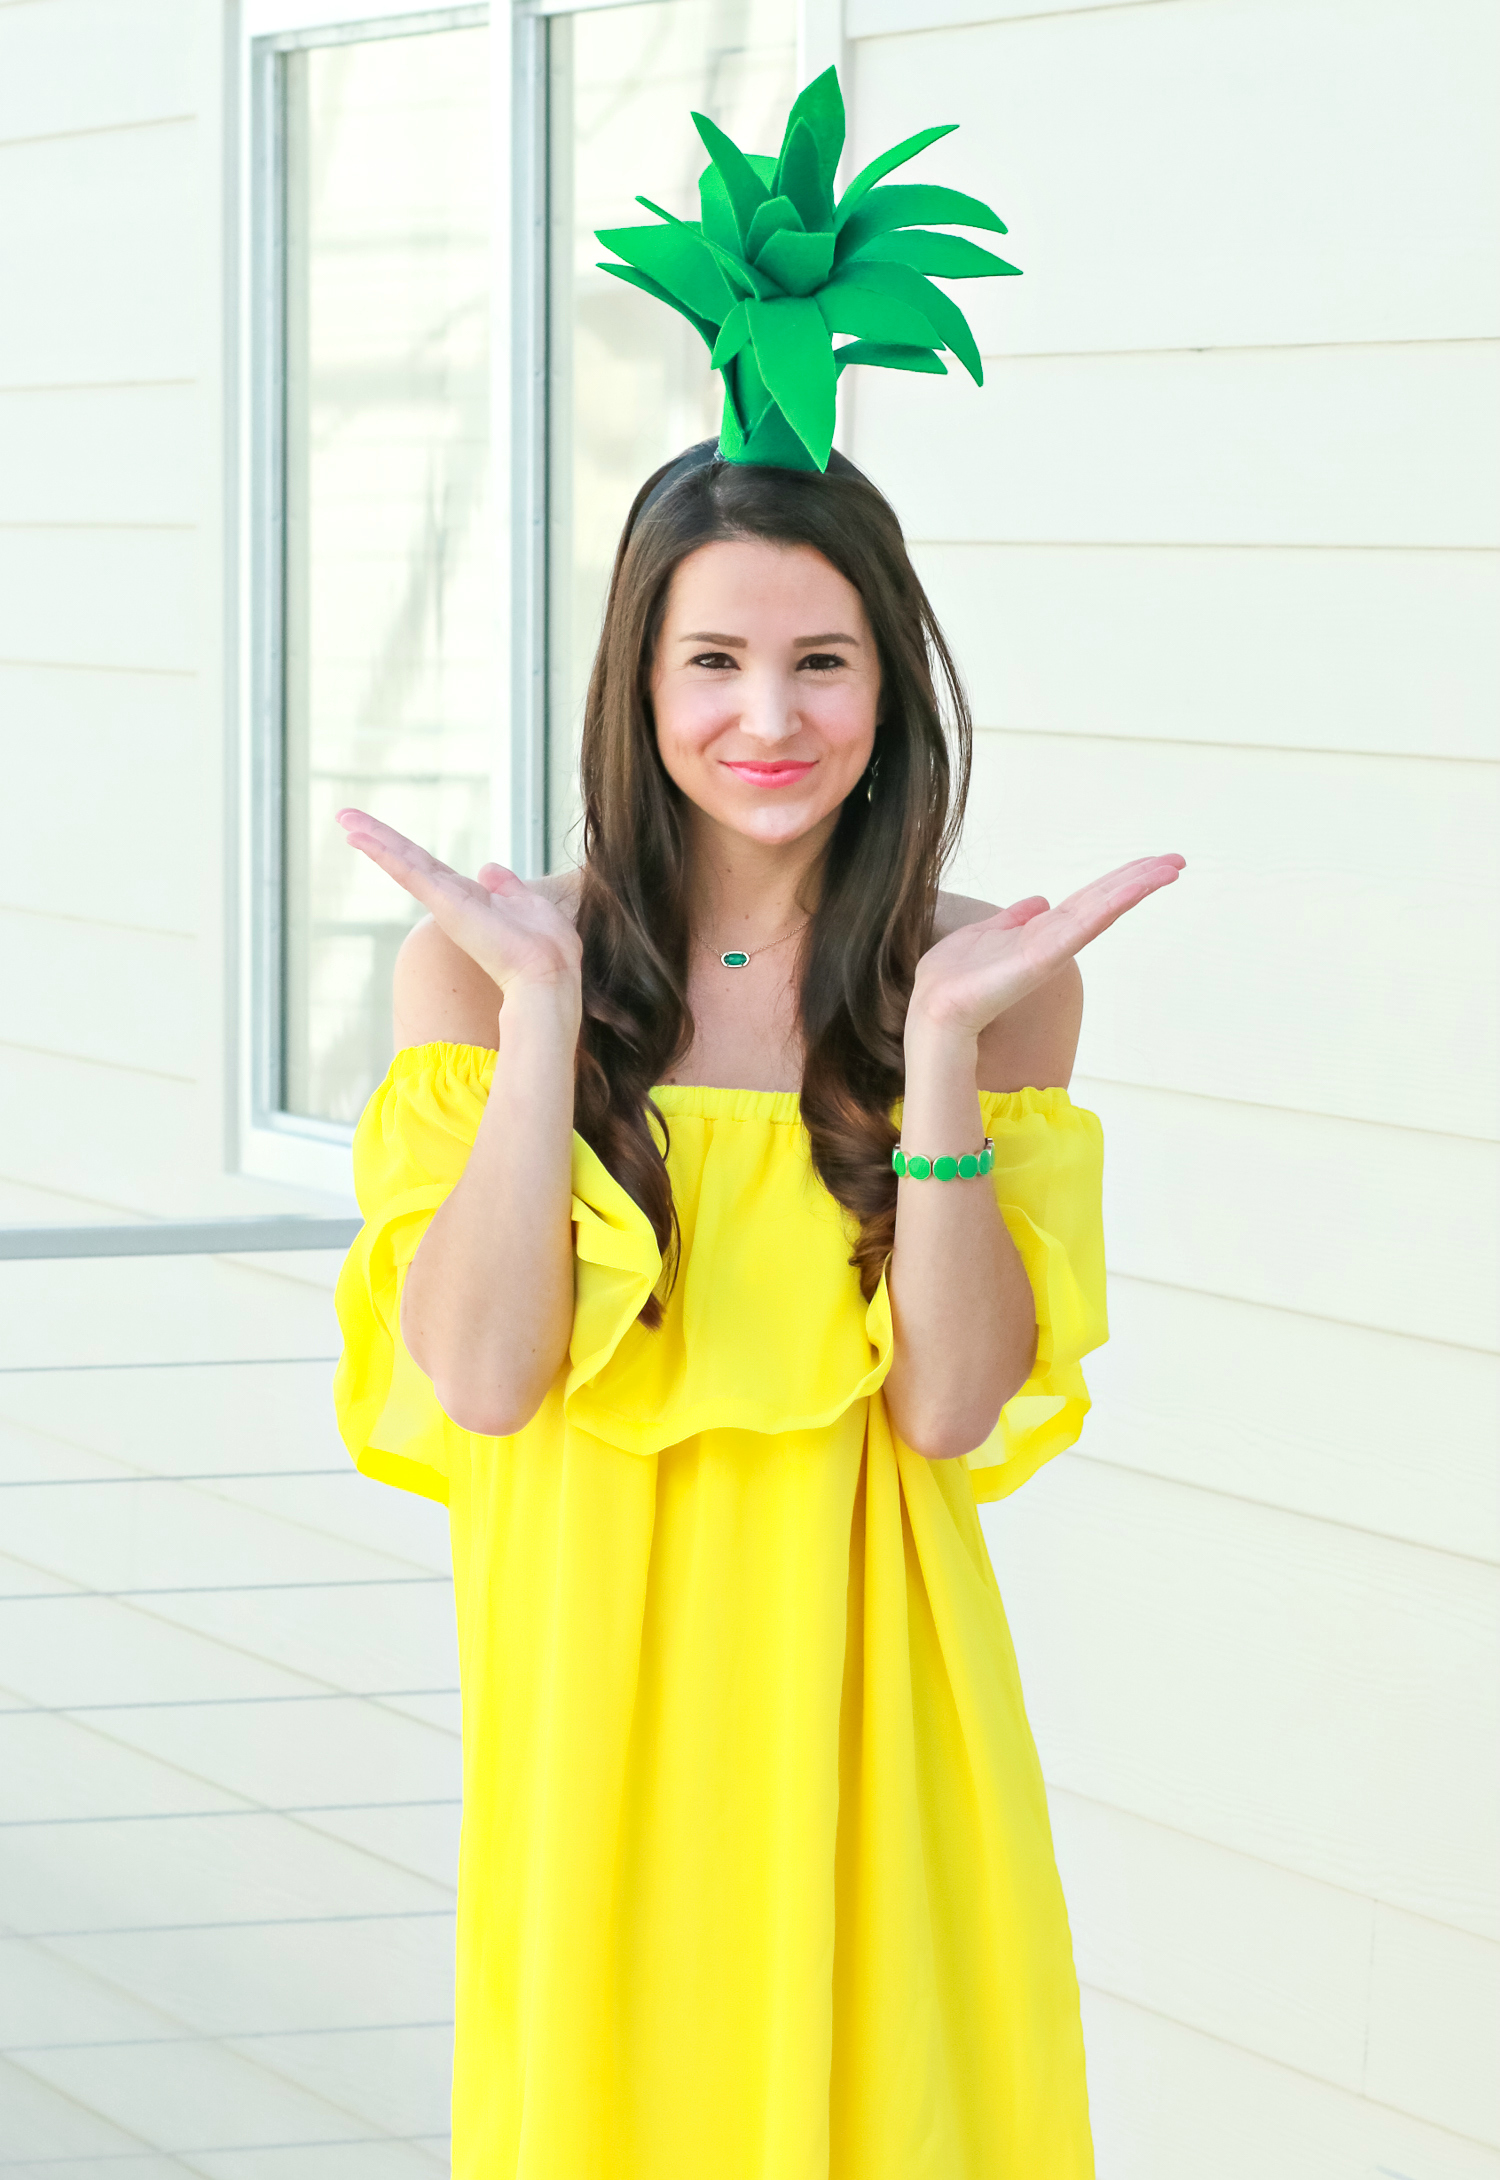 DIY Halloween Costume - DIY Pineapple - The Diary of A Debutante